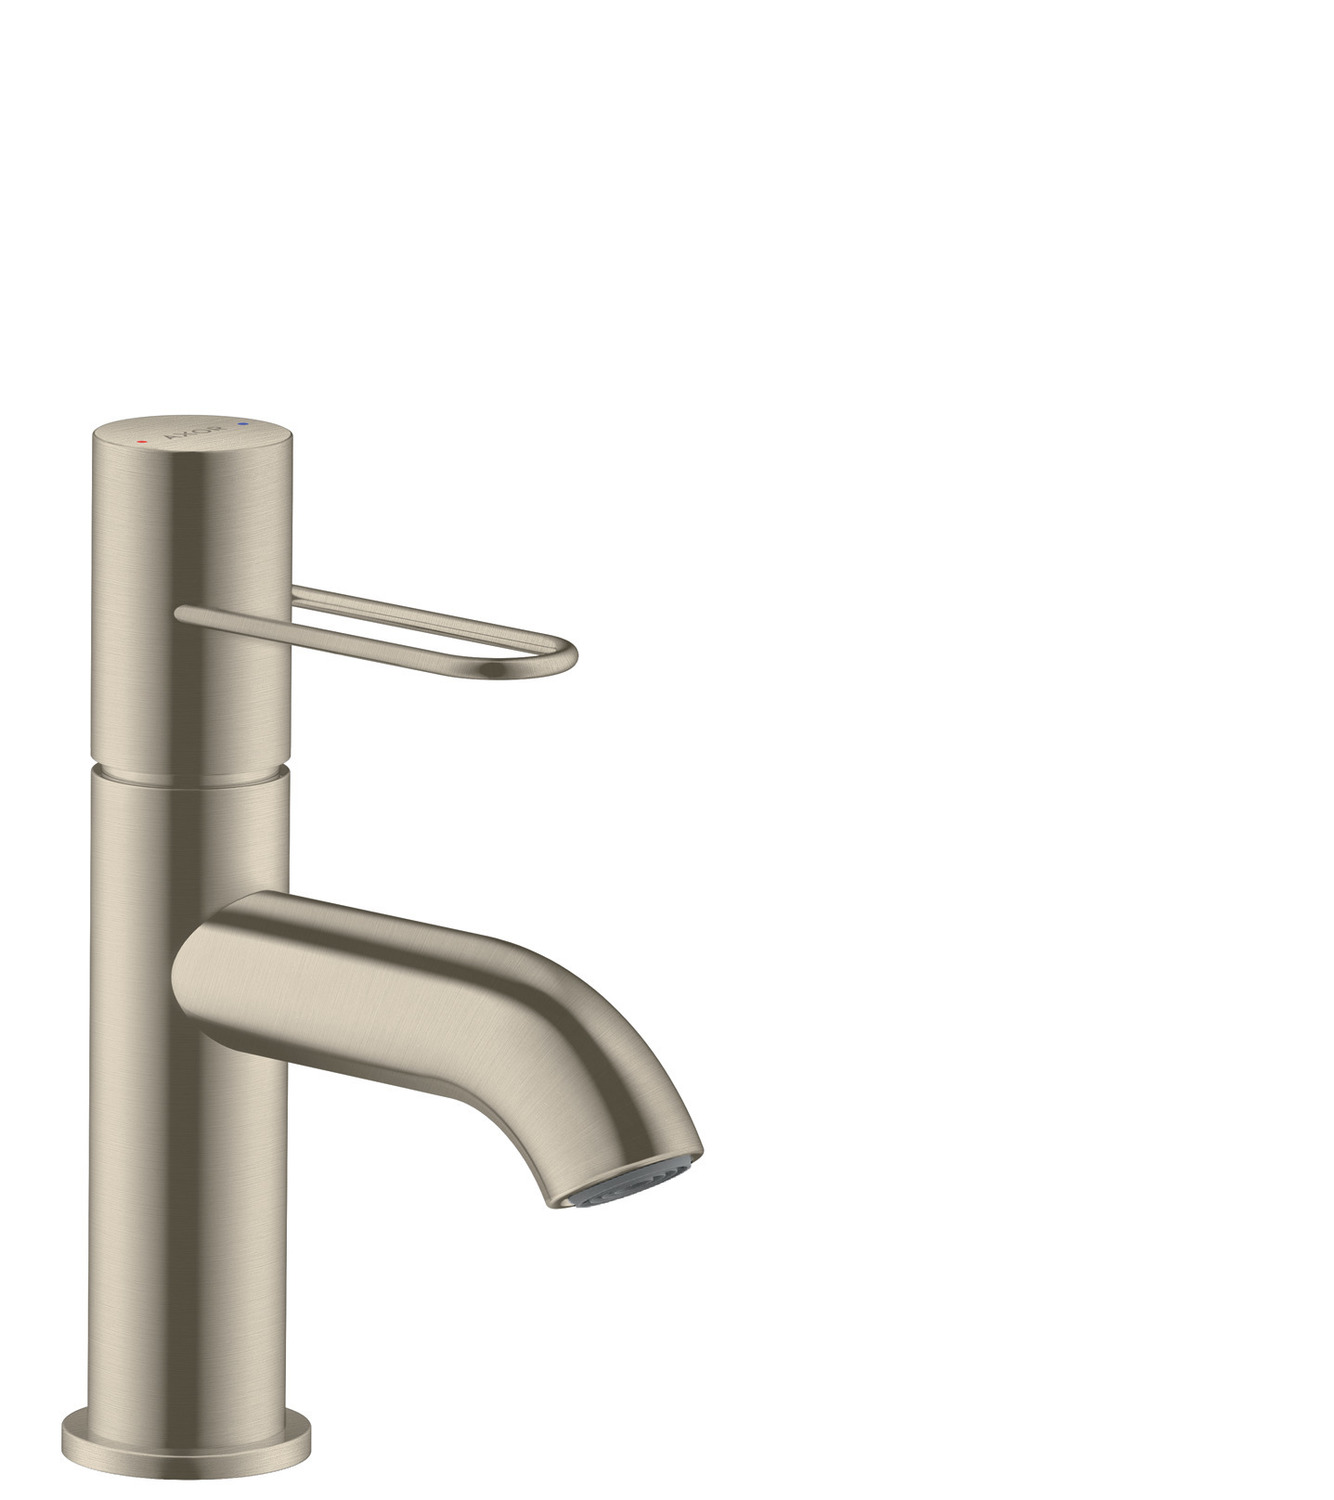 Brushed Nickel Single lever basin mixer 70 with loop handle and waste set